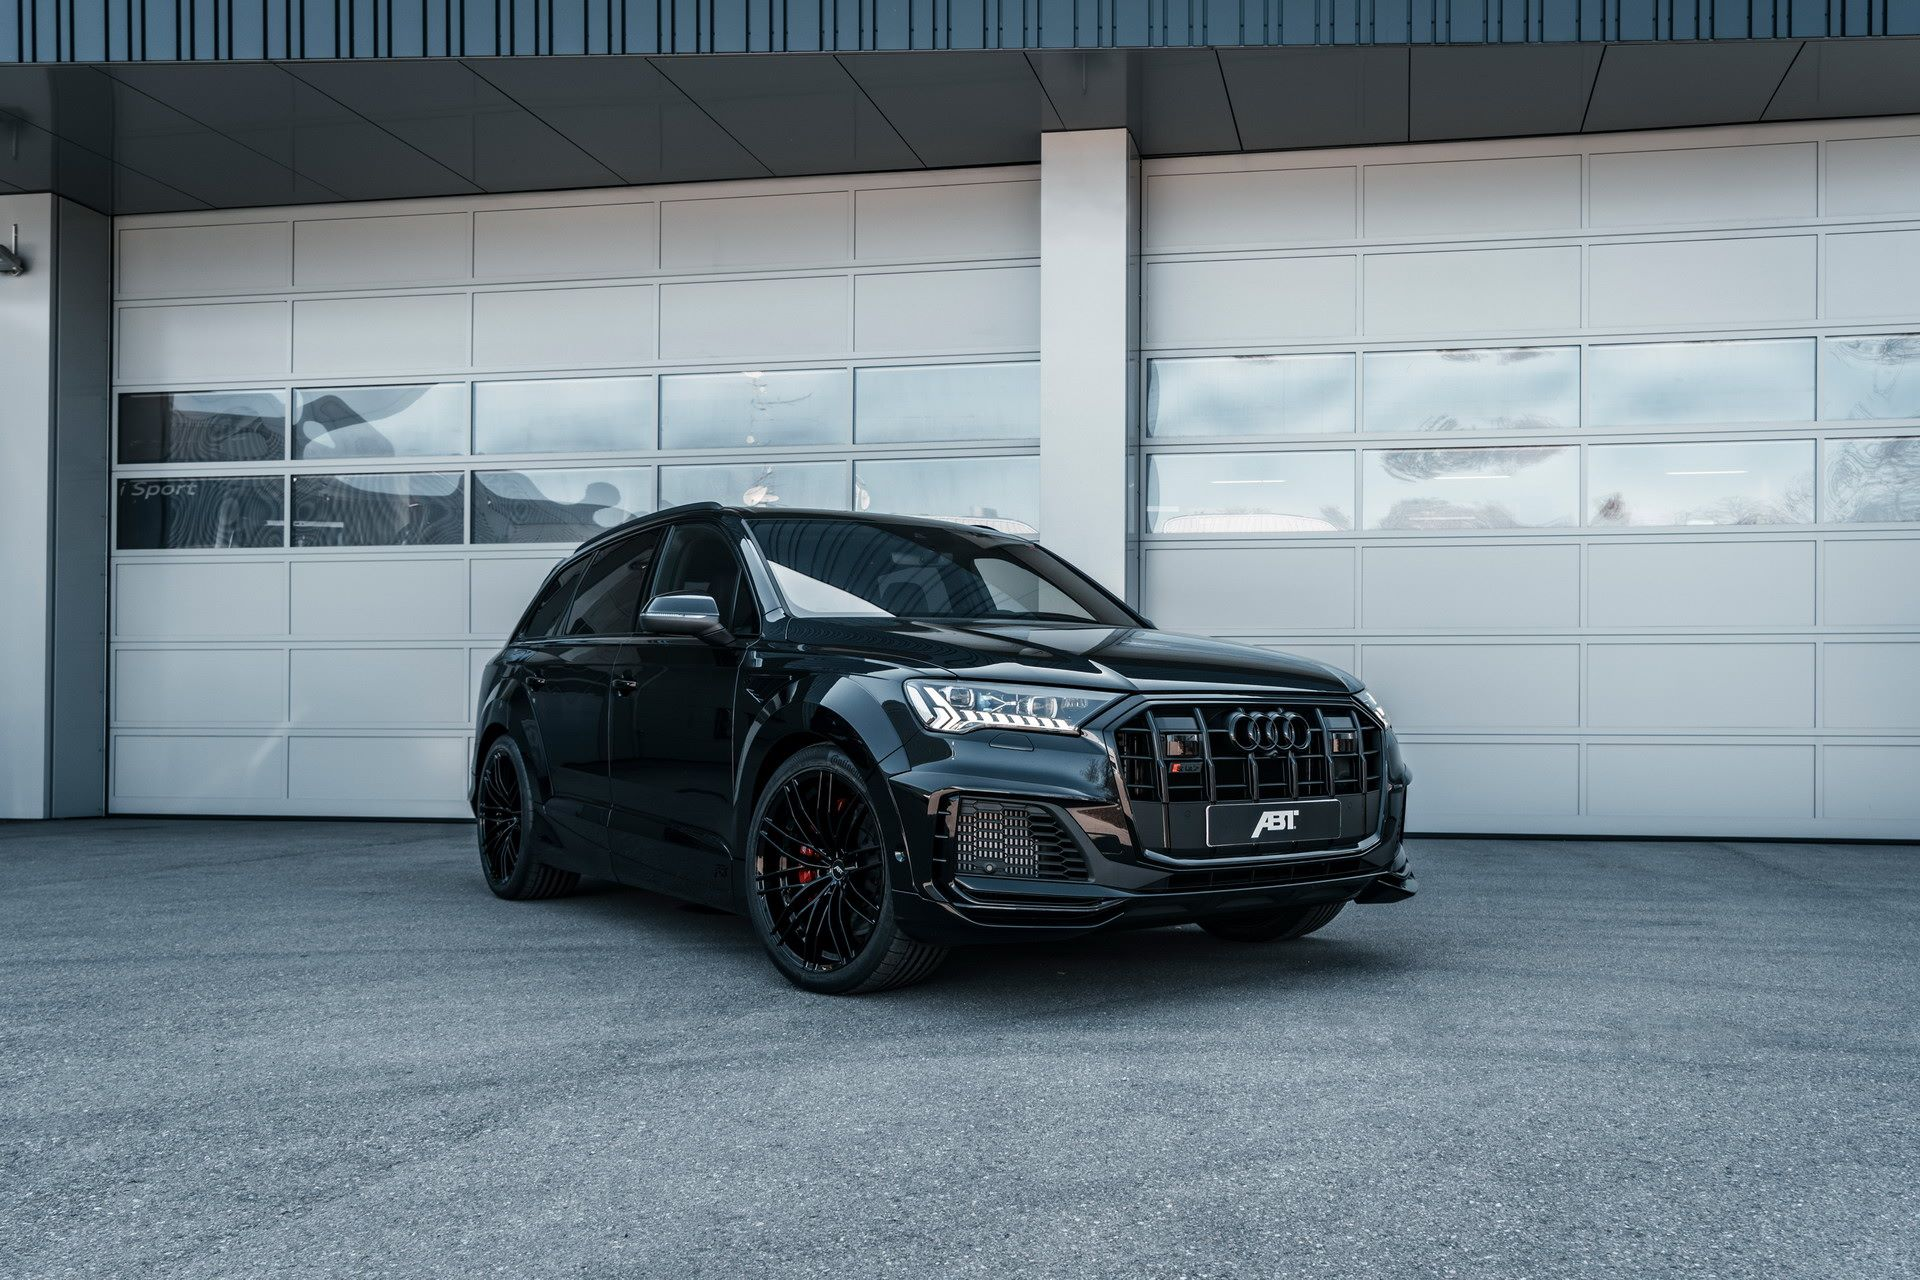 Audi-SQ7-tuned-by-ABT-Sportsline-2